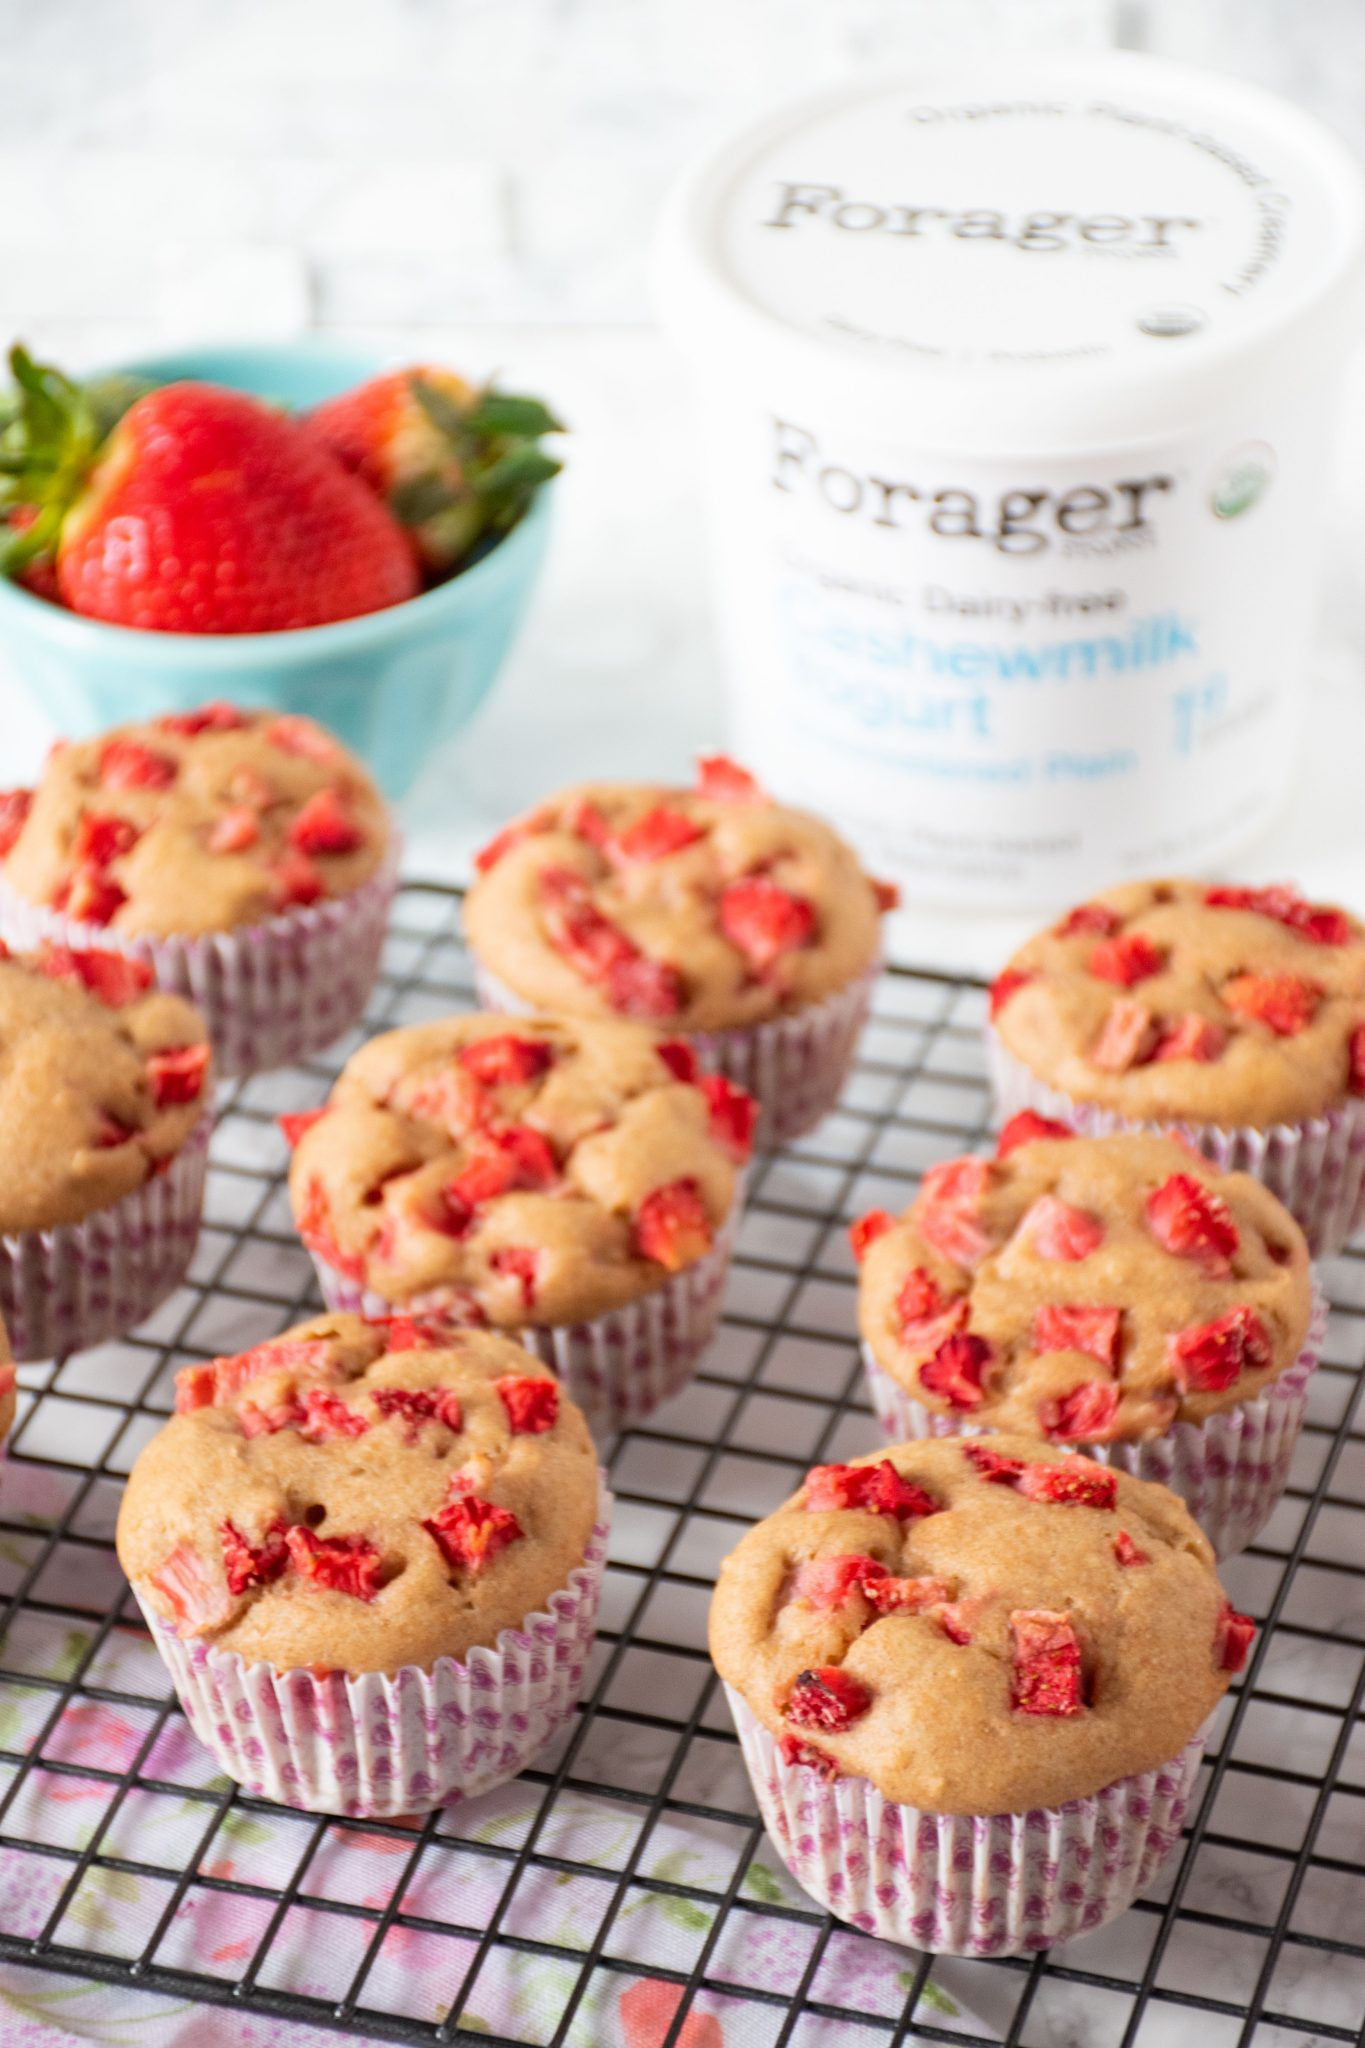 Strawberry muffins on a wire rack with a small bowl of strawberries and Forager Cashewmilk Yogurt in the background